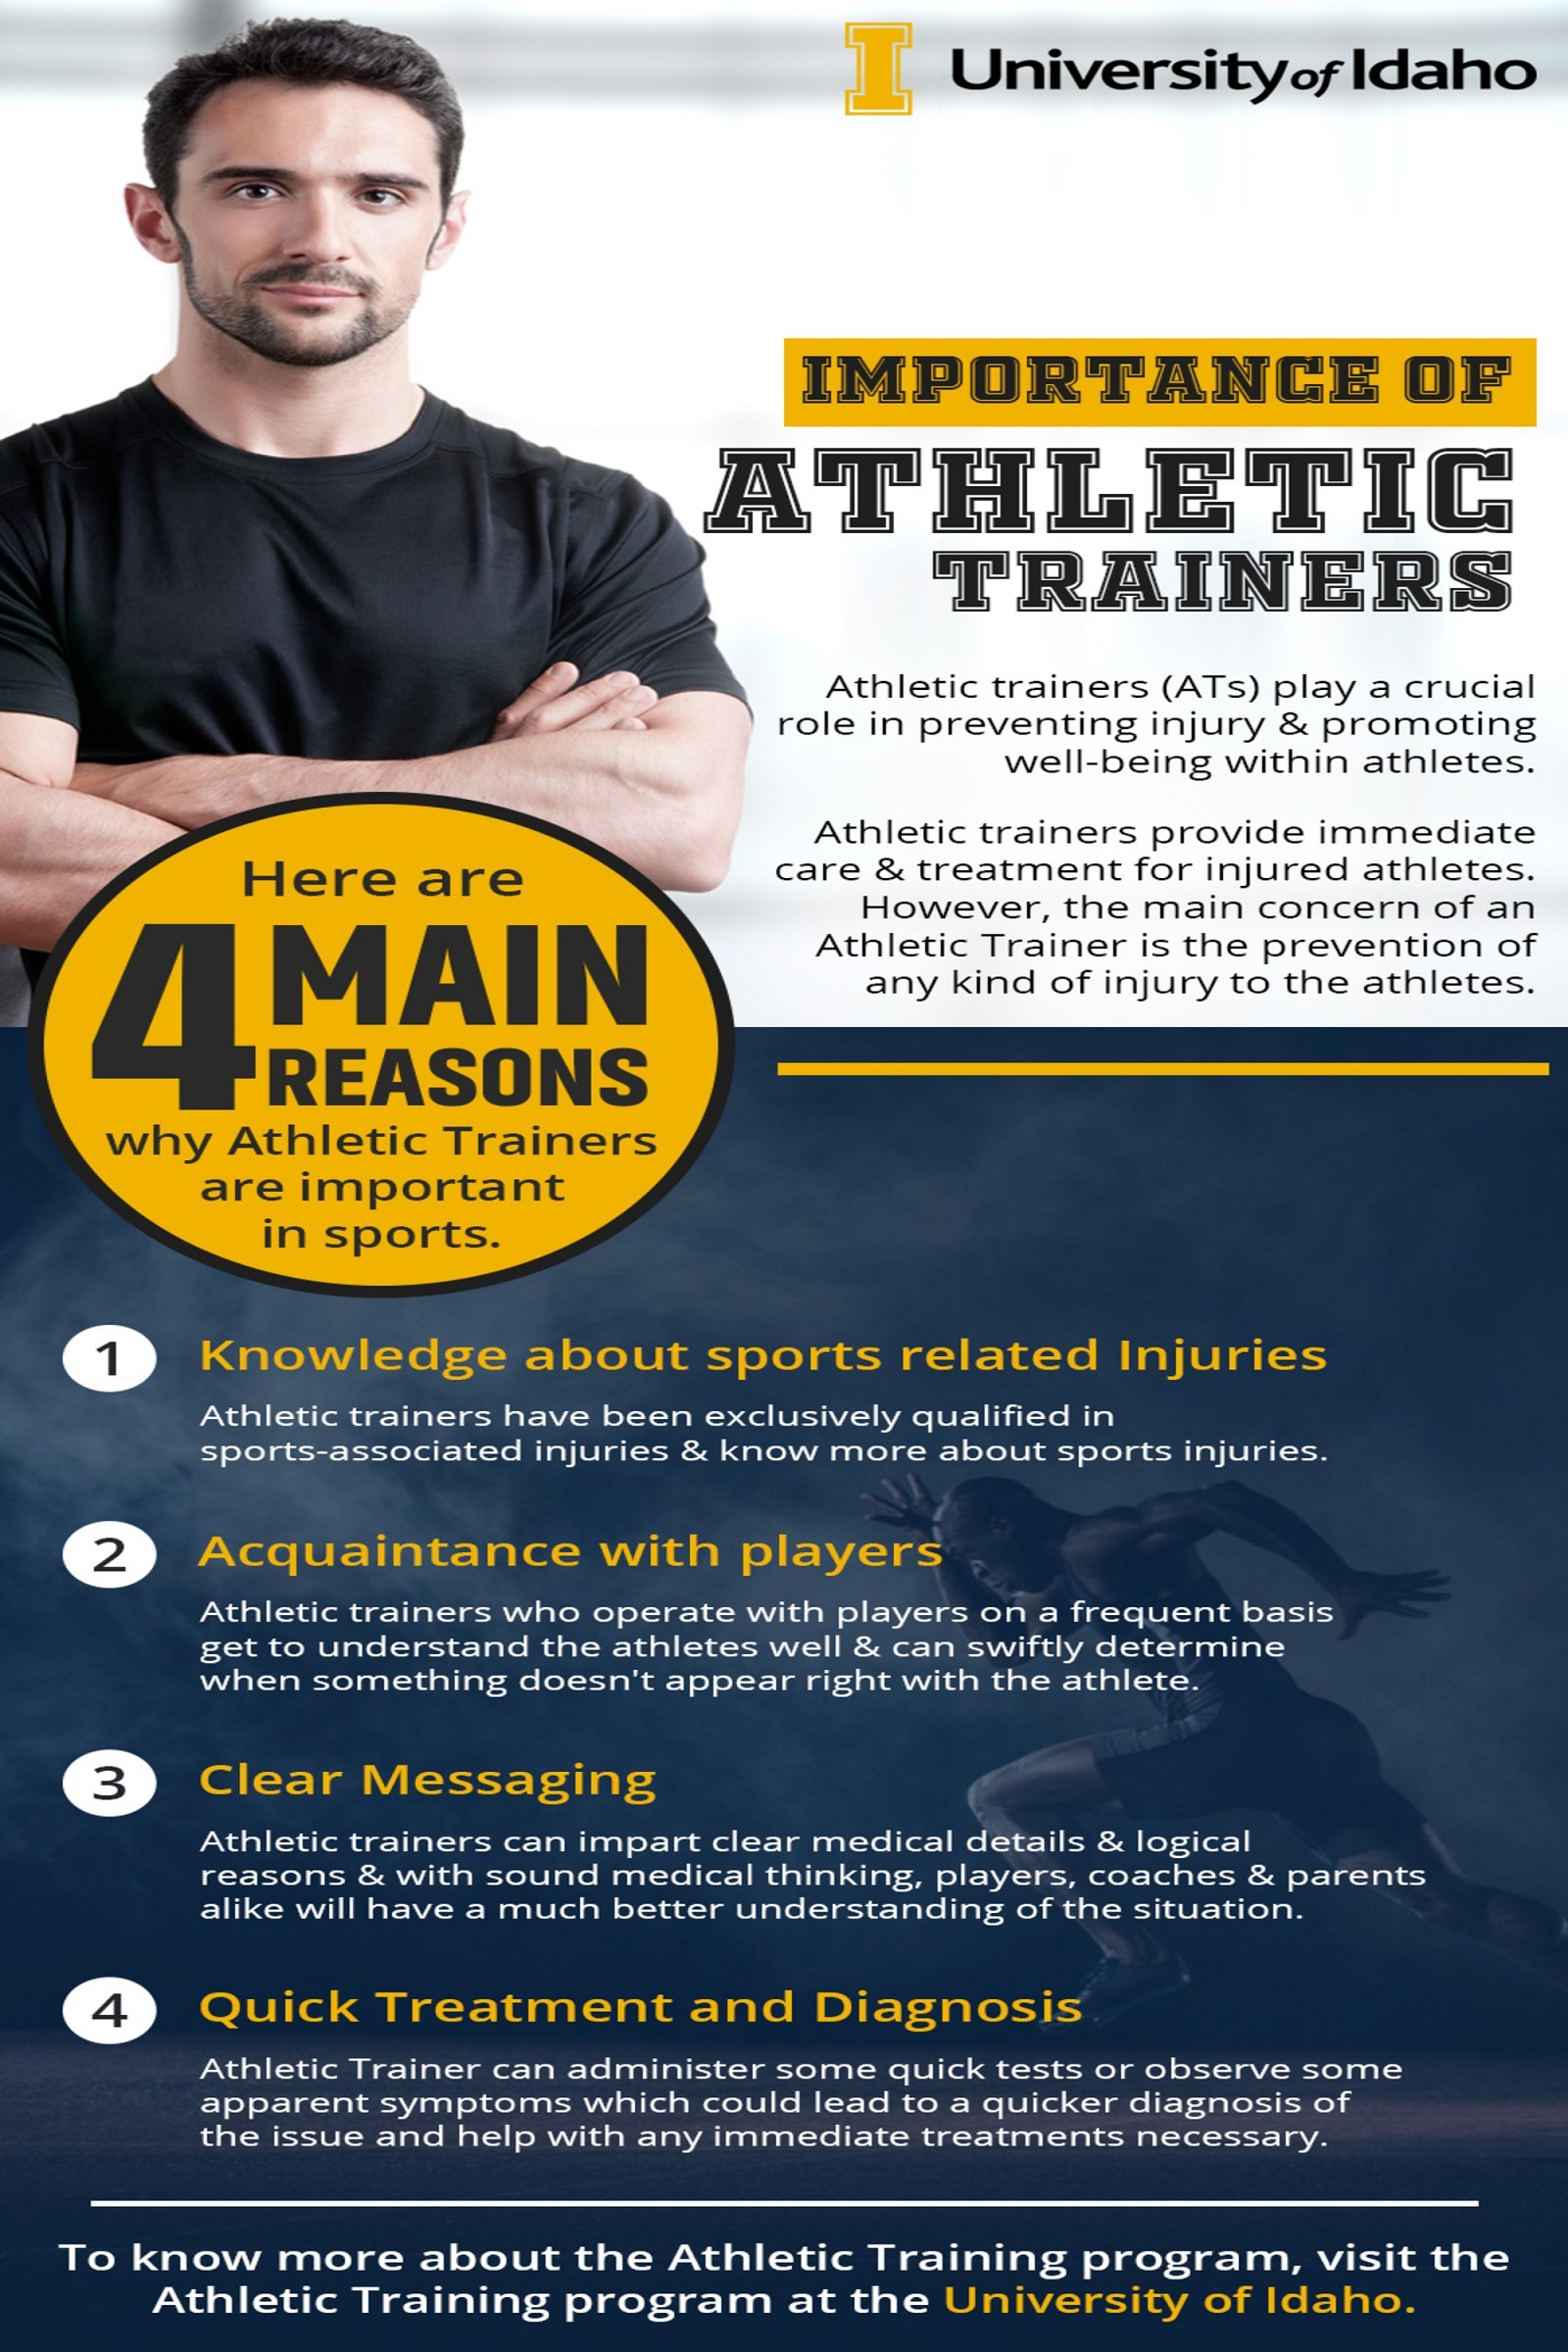 Athletic Trainers in sports